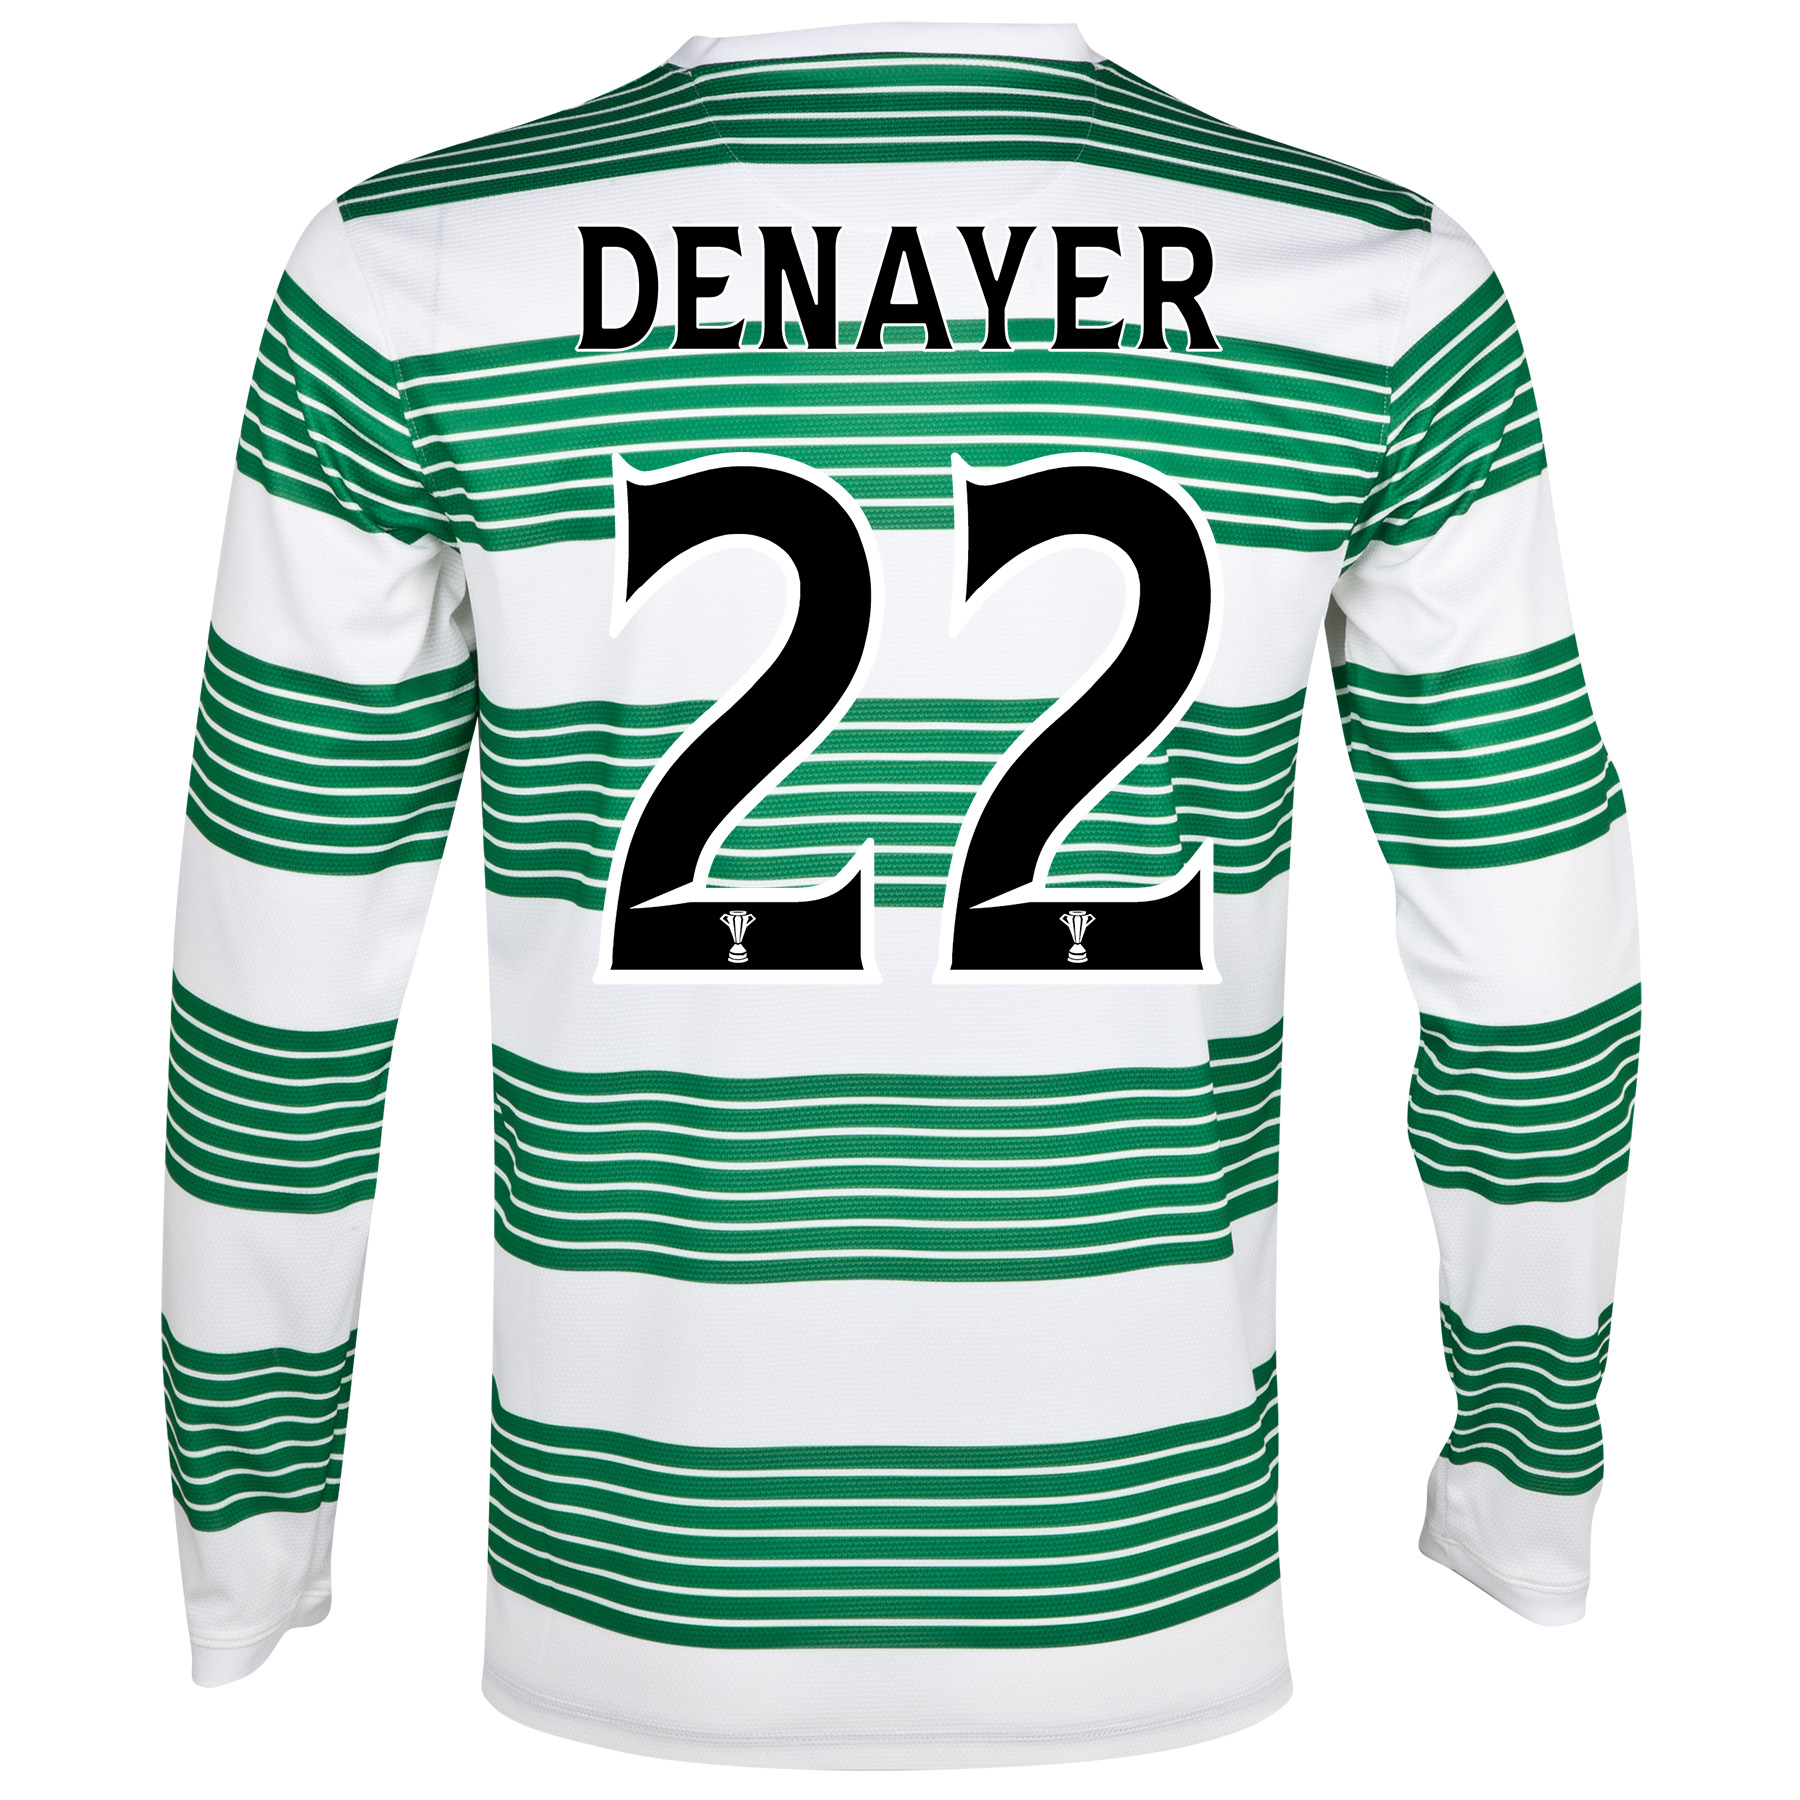 Celtic Home Shirt 2013/15 - L/S- With Sponsor with Denayer 22 printing